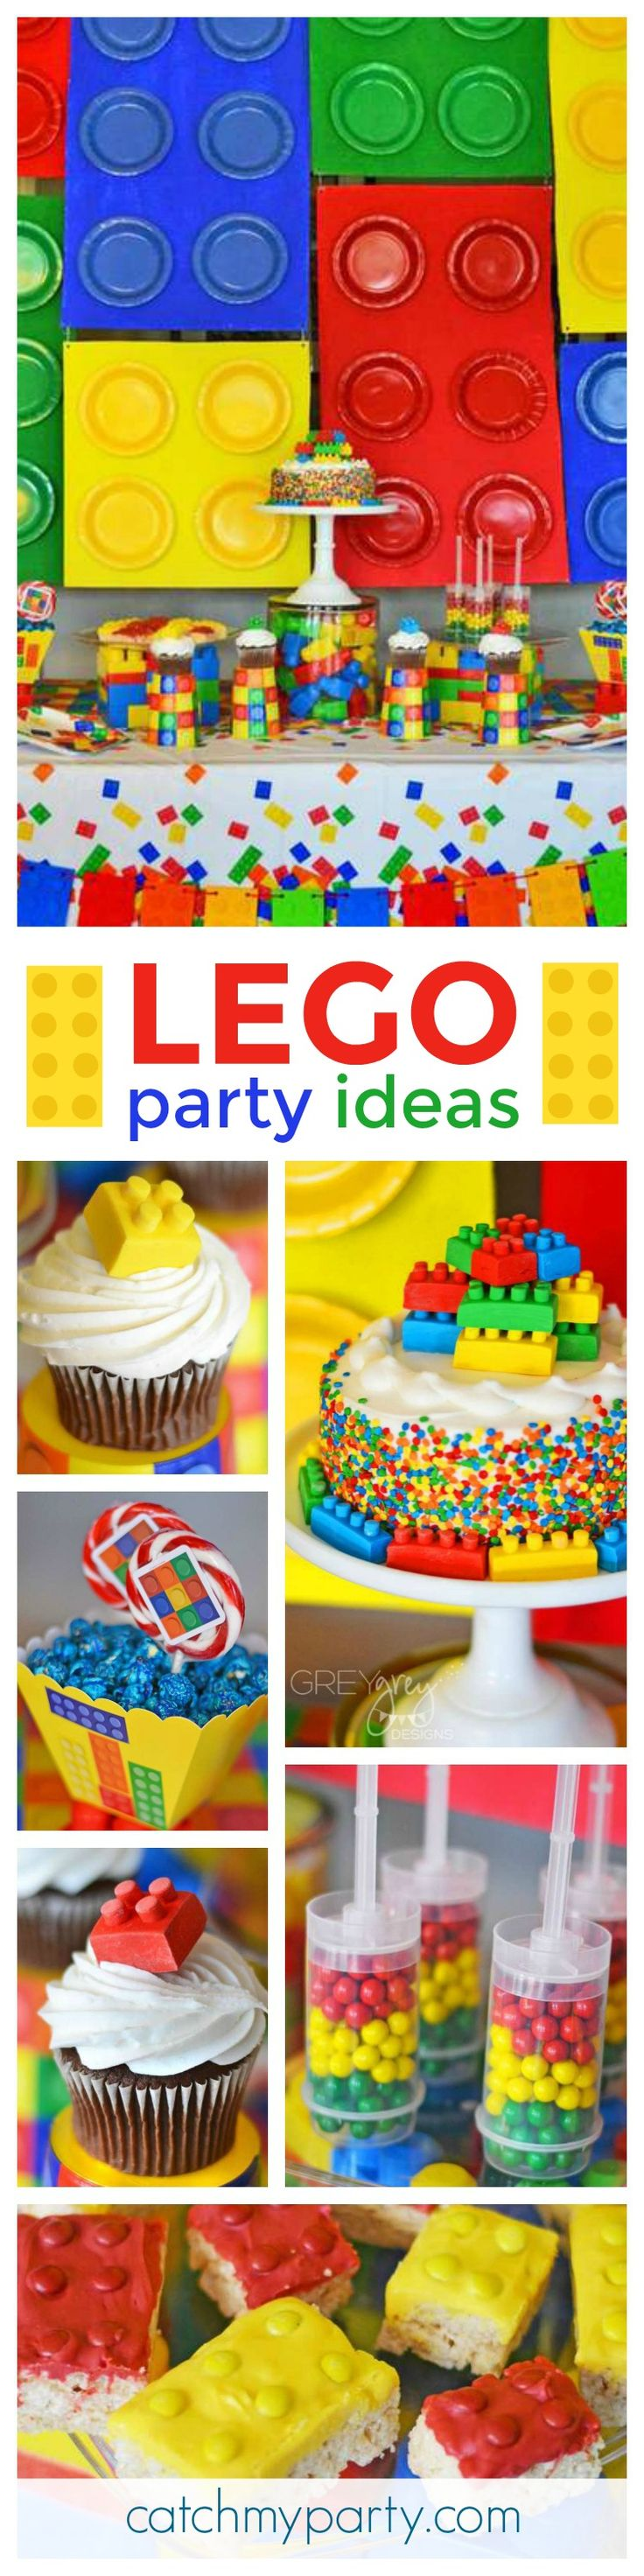 Best 25+ Boy birthday parties ideas on Pinterest